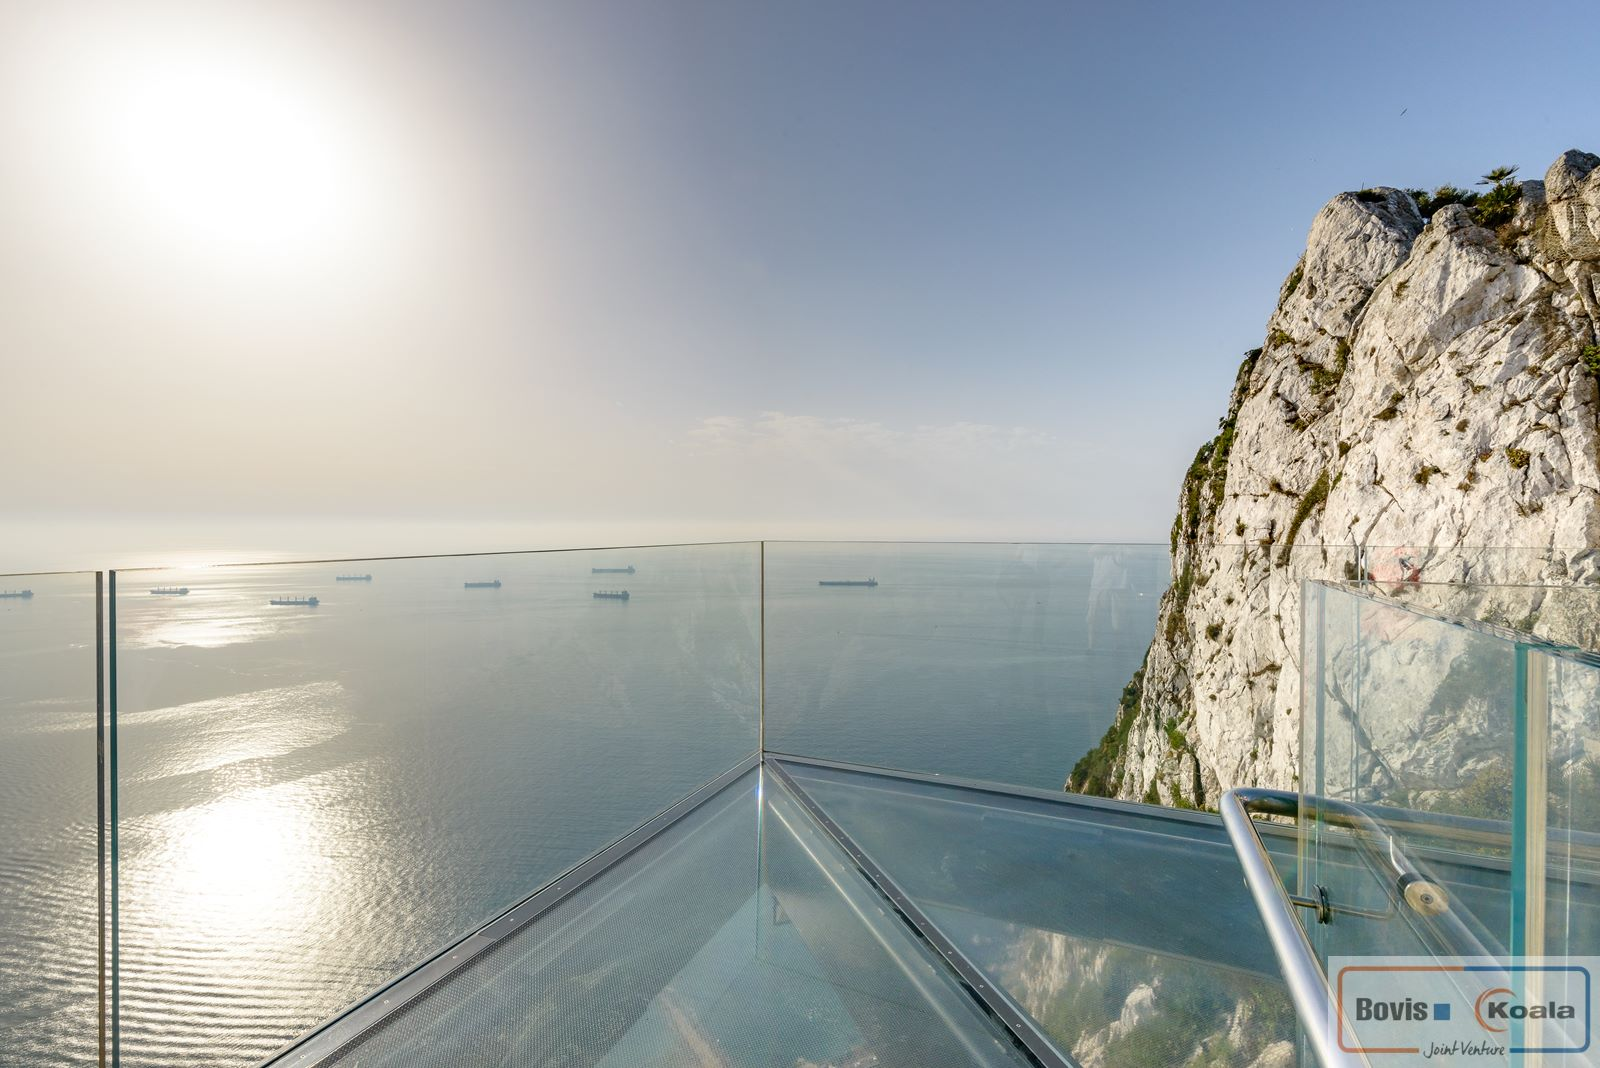 Bovis Koala Skywalk Gibraltar 12